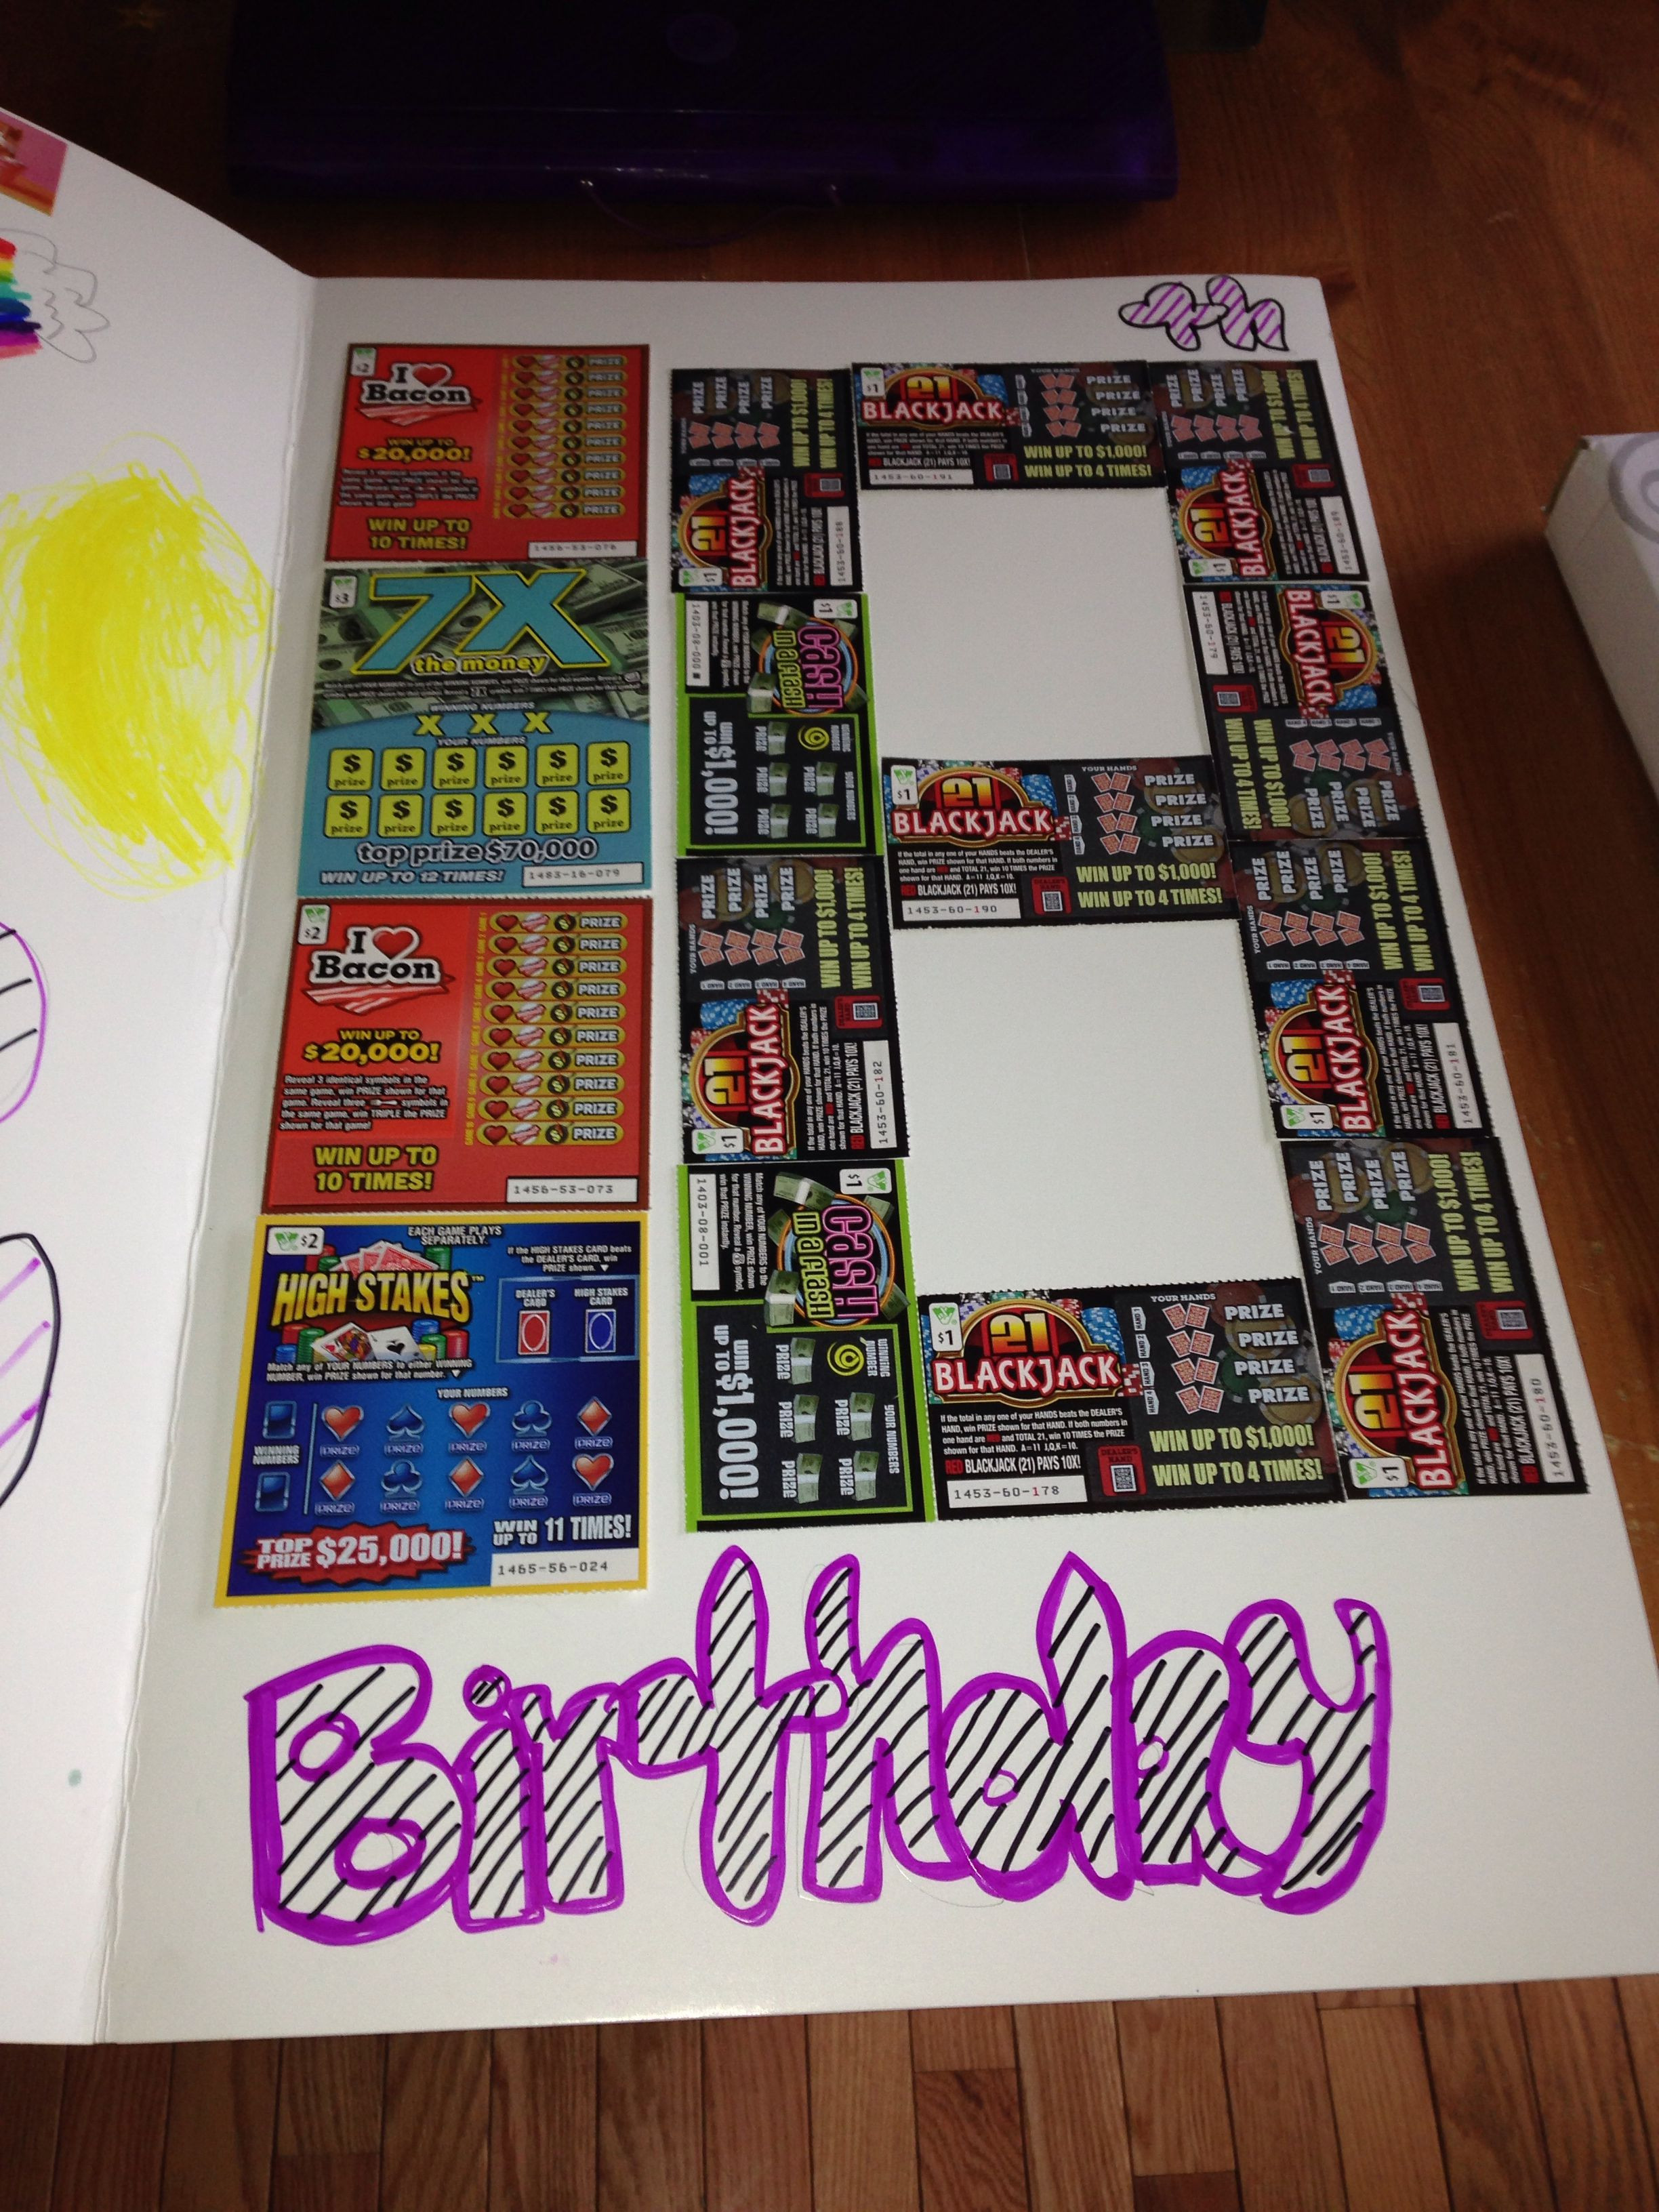 Best ideas about 18th Birthday Gift Ideas . Save or Pin Scratch f lottery tickets Great 18th birthday idea Now.